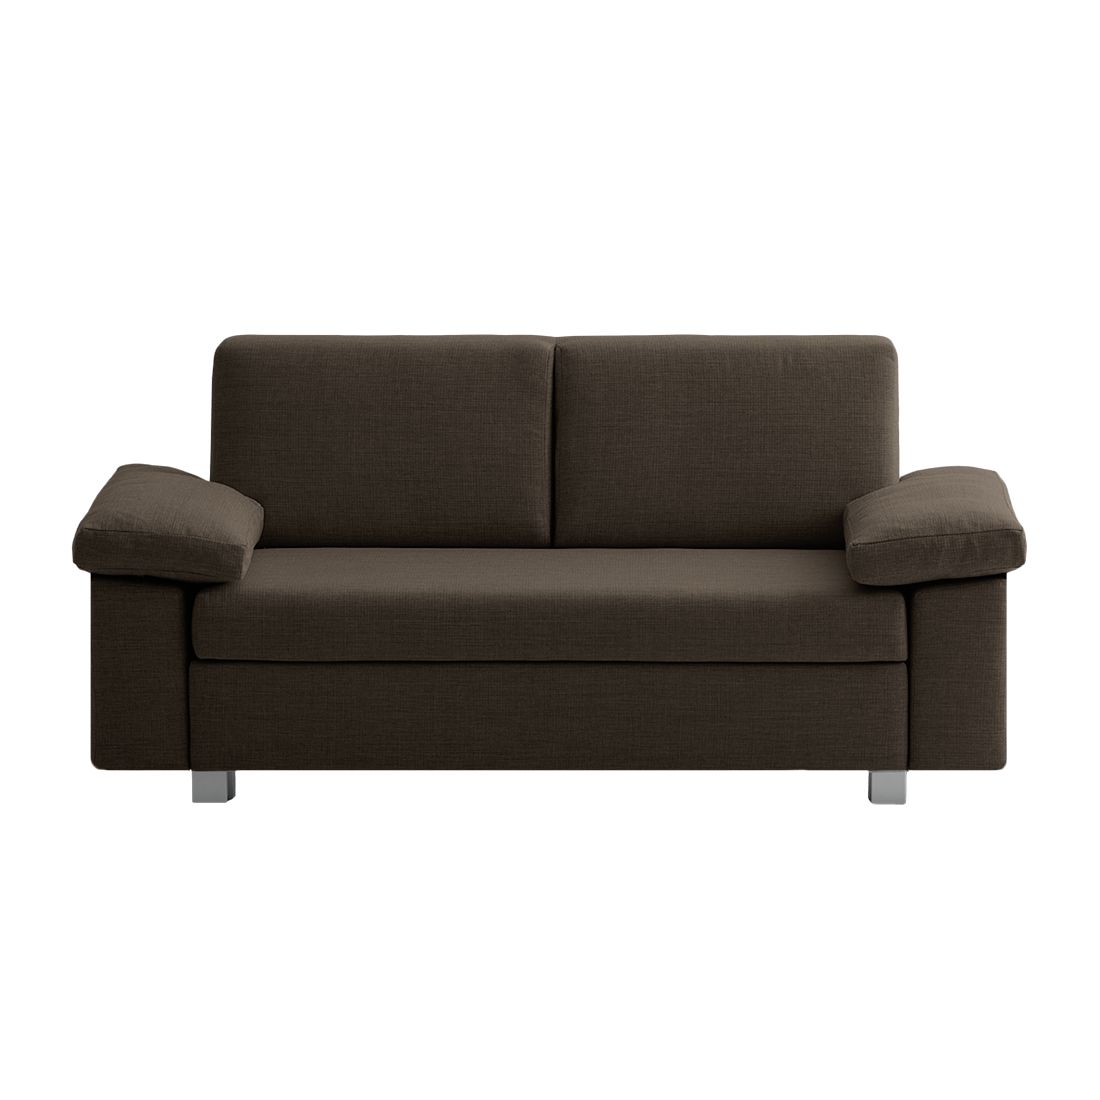 Canapé convertible Plaza - Tissu - Marron - 172 cm - Types d'accoudoir rabattable, chillout by Franz